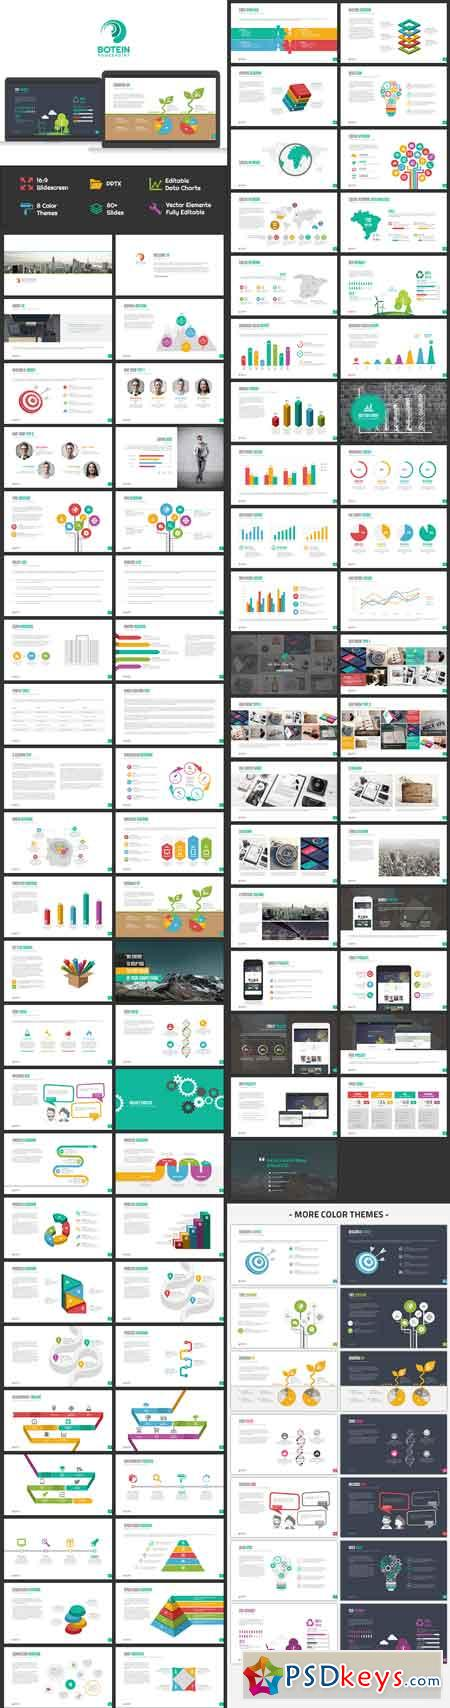 Botein Powerpoint Template 8585458